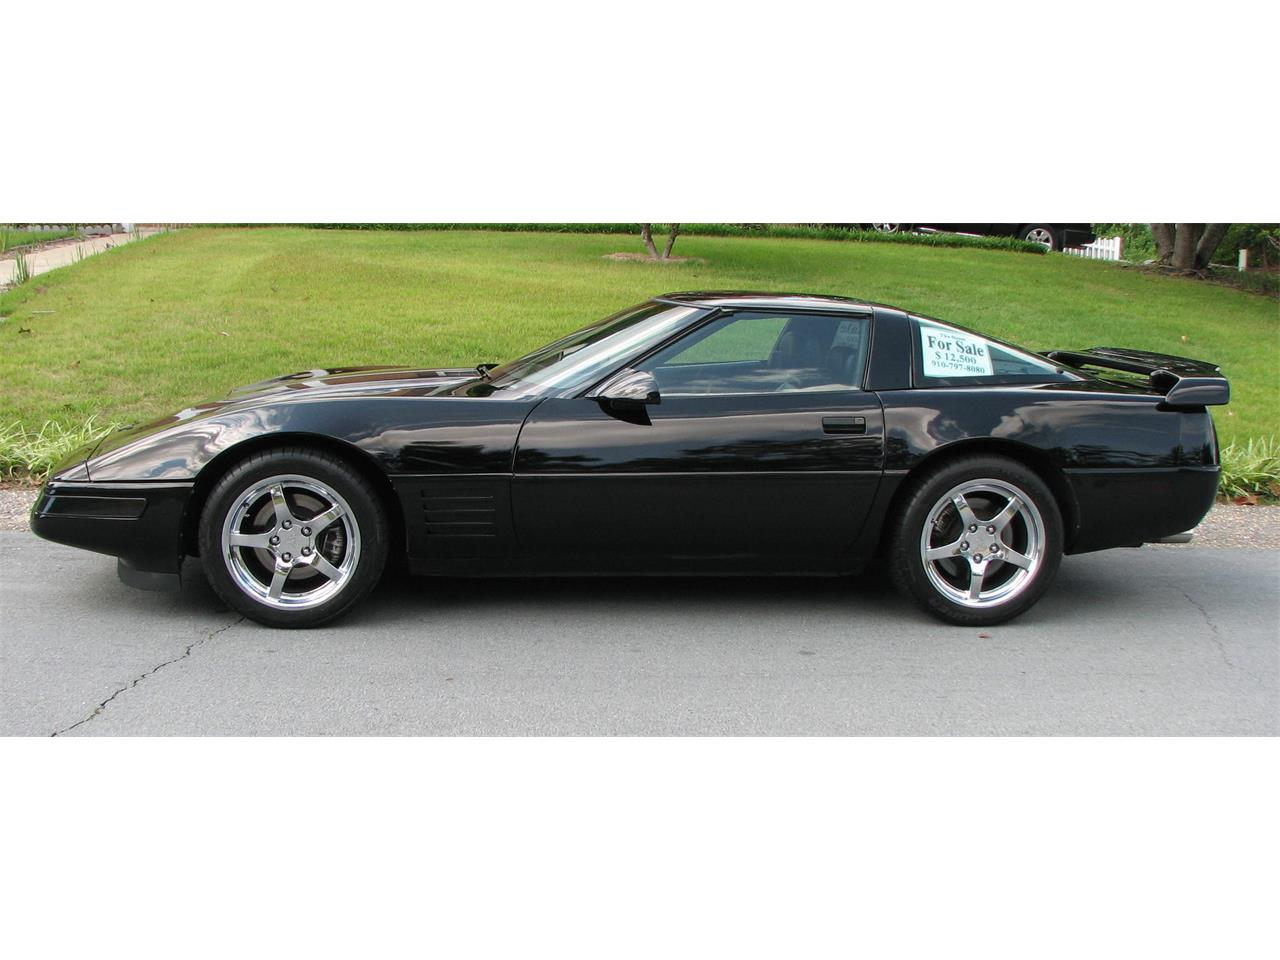 Large Picture of 1991 Chevrolet Corvette located in FAYETTEVILLE North Carolina - $10,750.00 - L16X